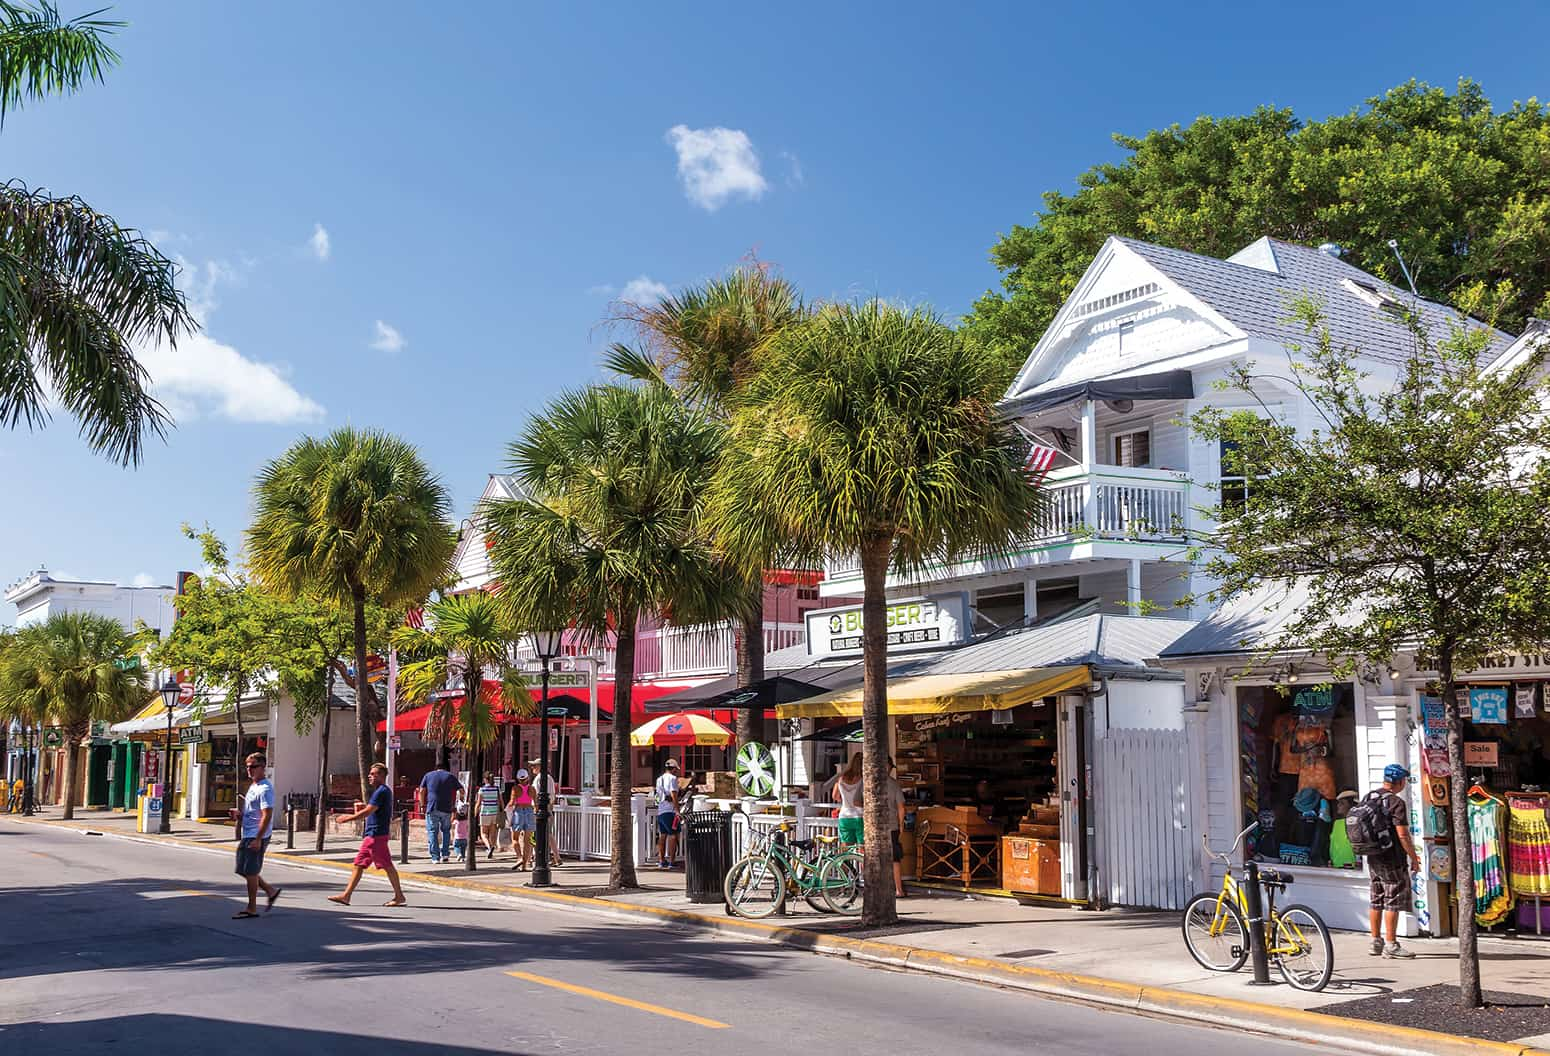 Explore downtown with our Key West travel guide